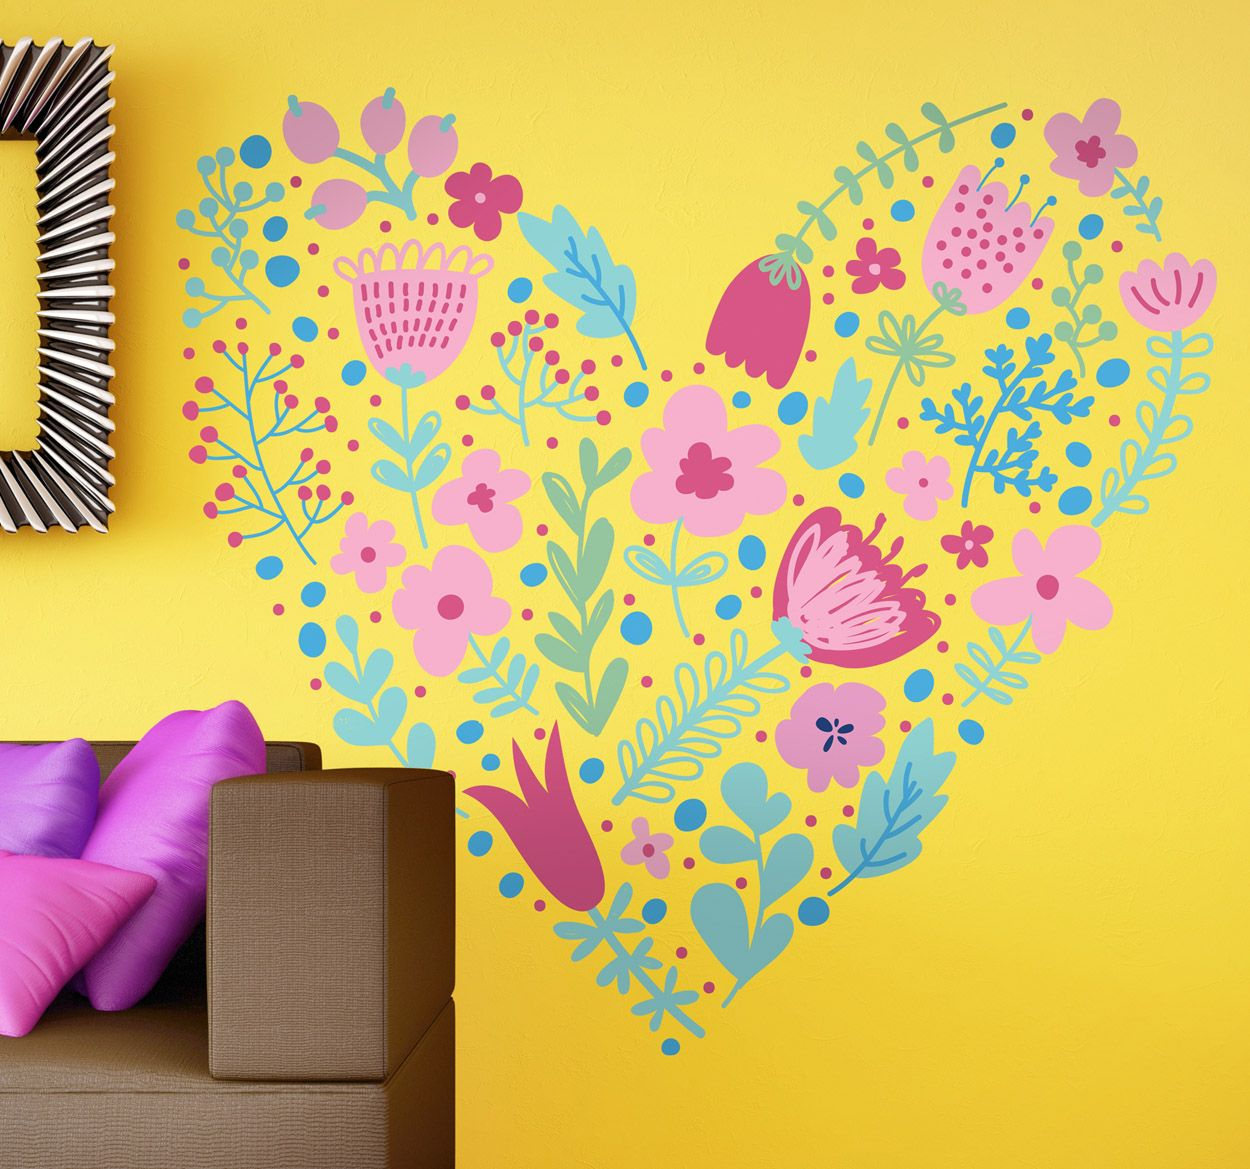 Lovely design of a heart made out of flowers. Find more flowe ...